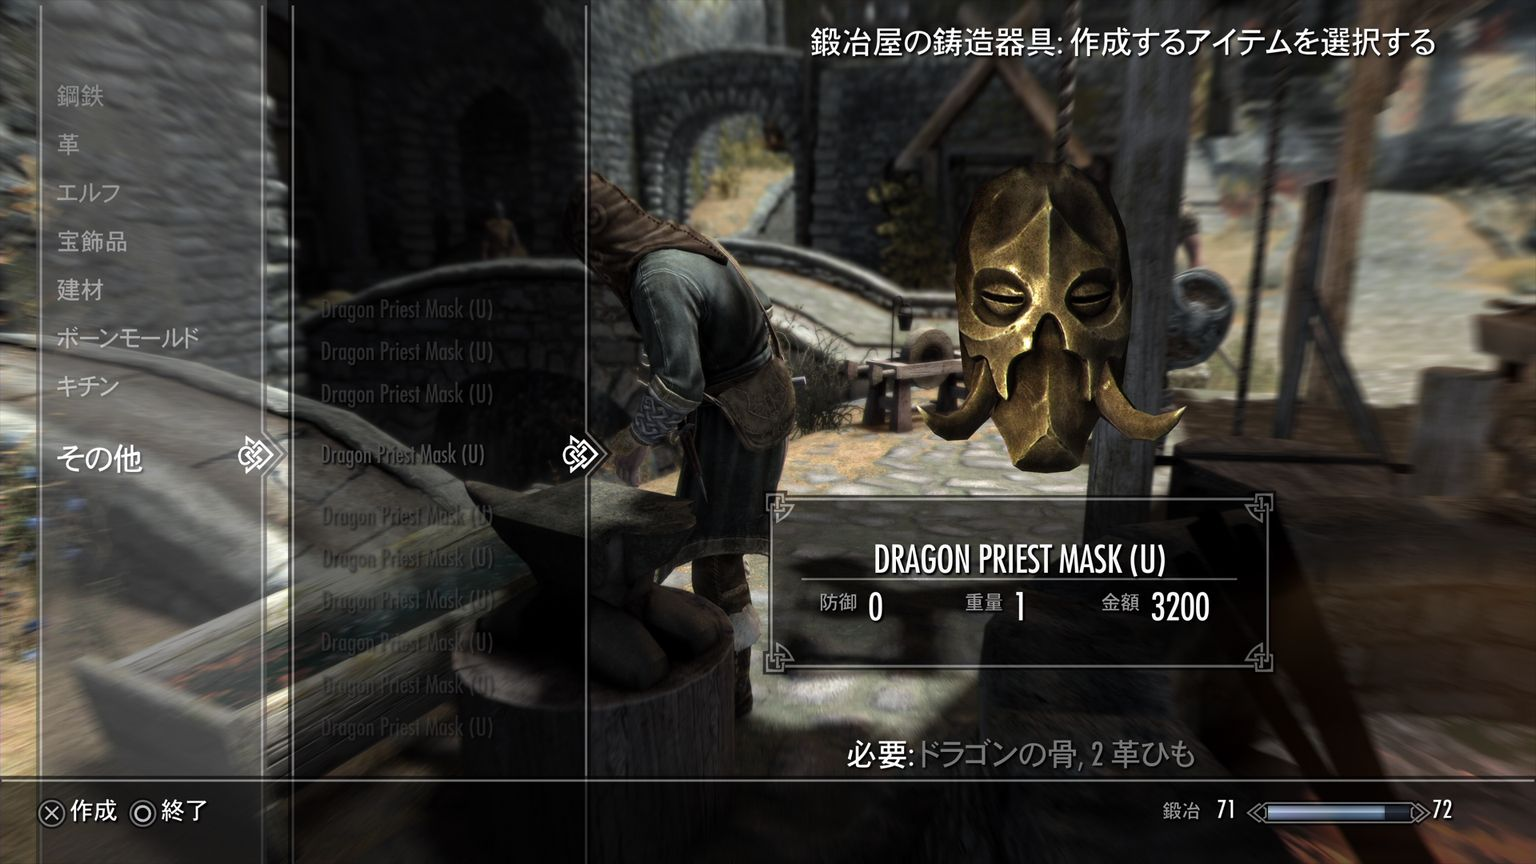 Skyrim Dragon Priest Mask Mod Ps4 - All About Of Mask